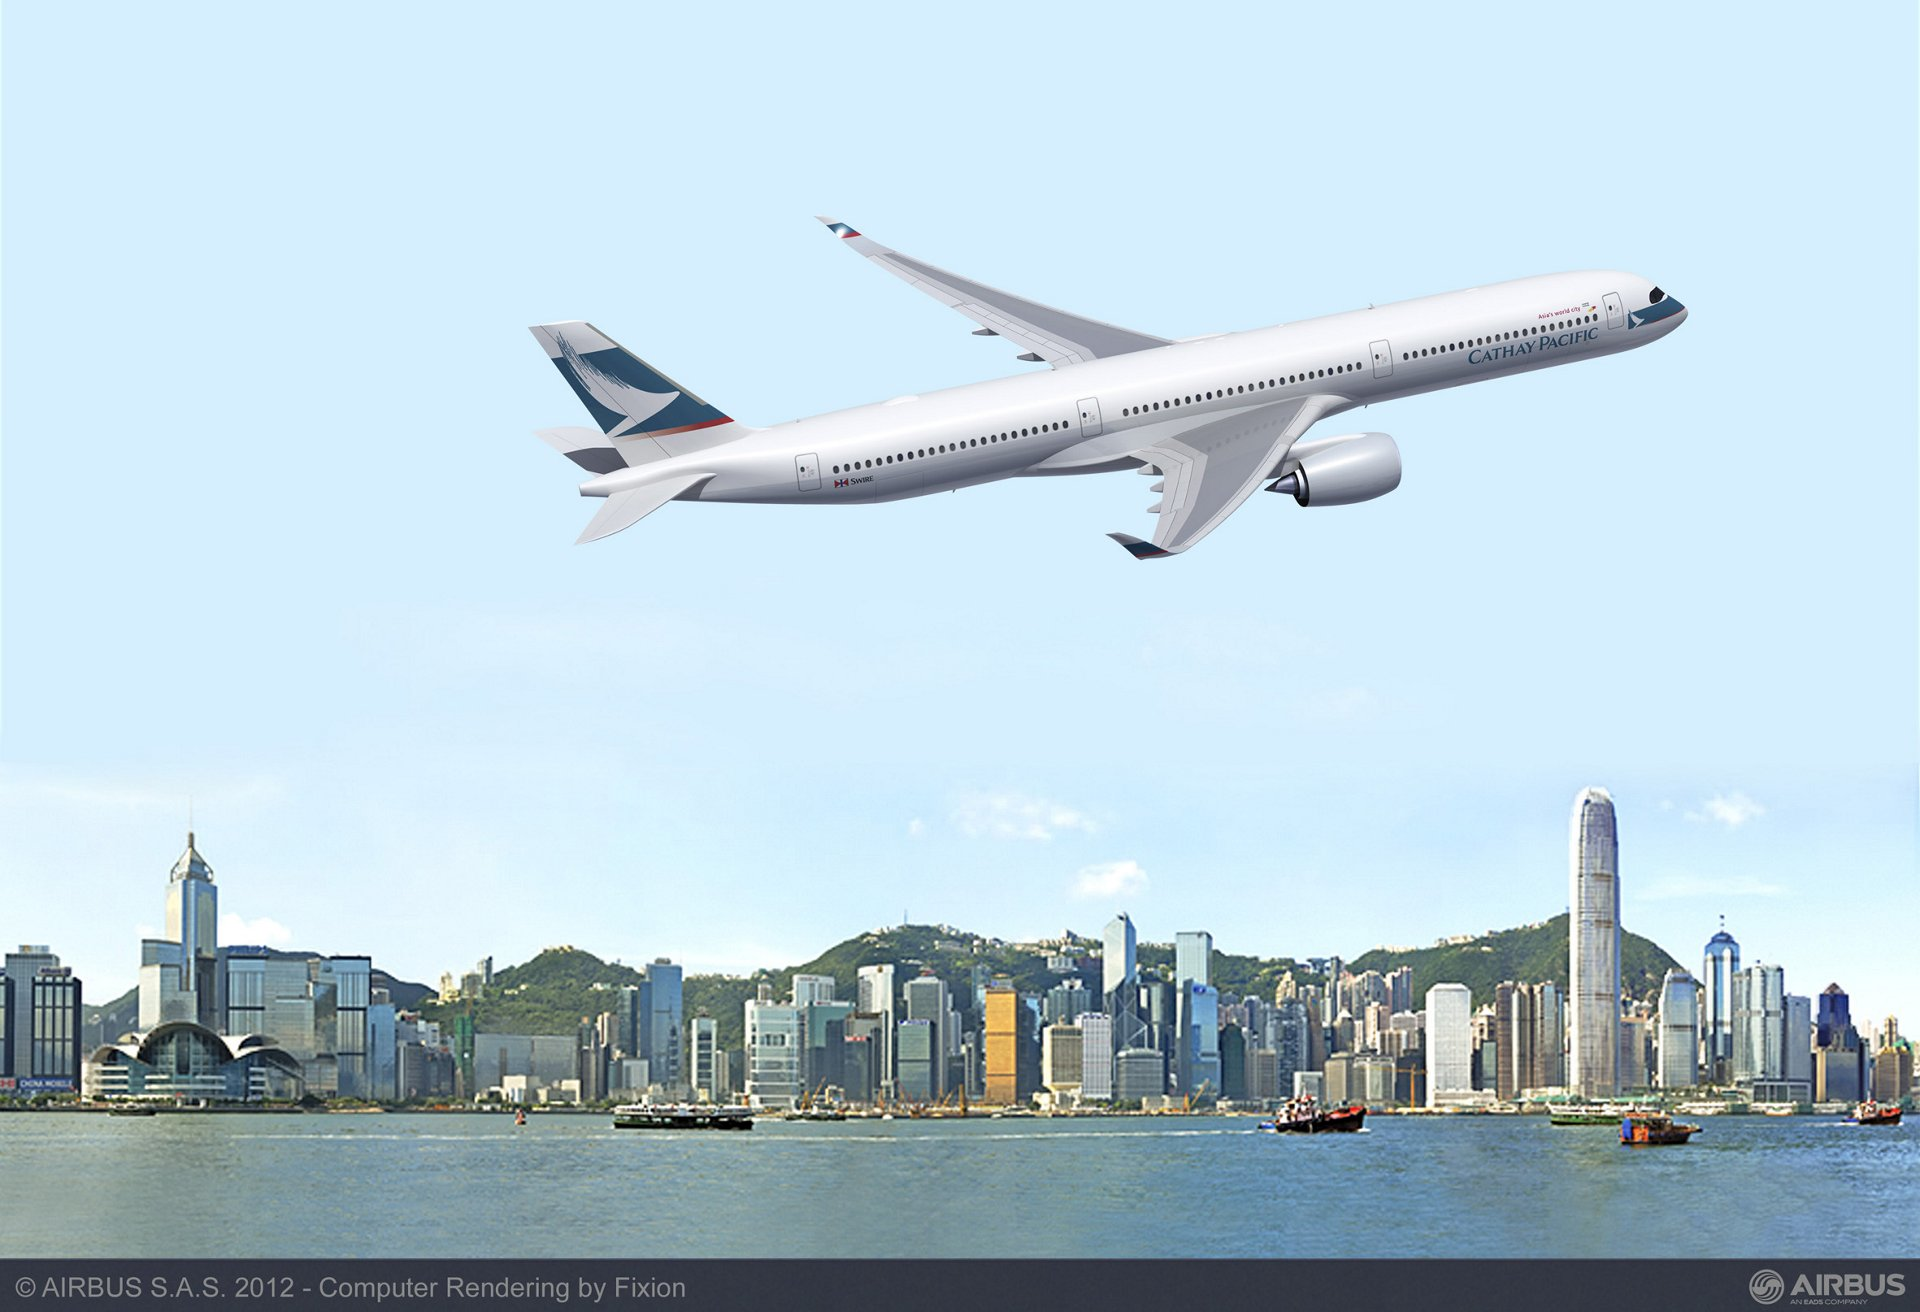 Cathay Pacific Airways today announced that it intends to add the A350-1000 to its future A350 XWB fleet, with an agreement to place a new order for 10 aircraft. In addition, the Hong Kong-based airline will convert 16 of its existing orders for the A350-900 to the larger A350-1000.